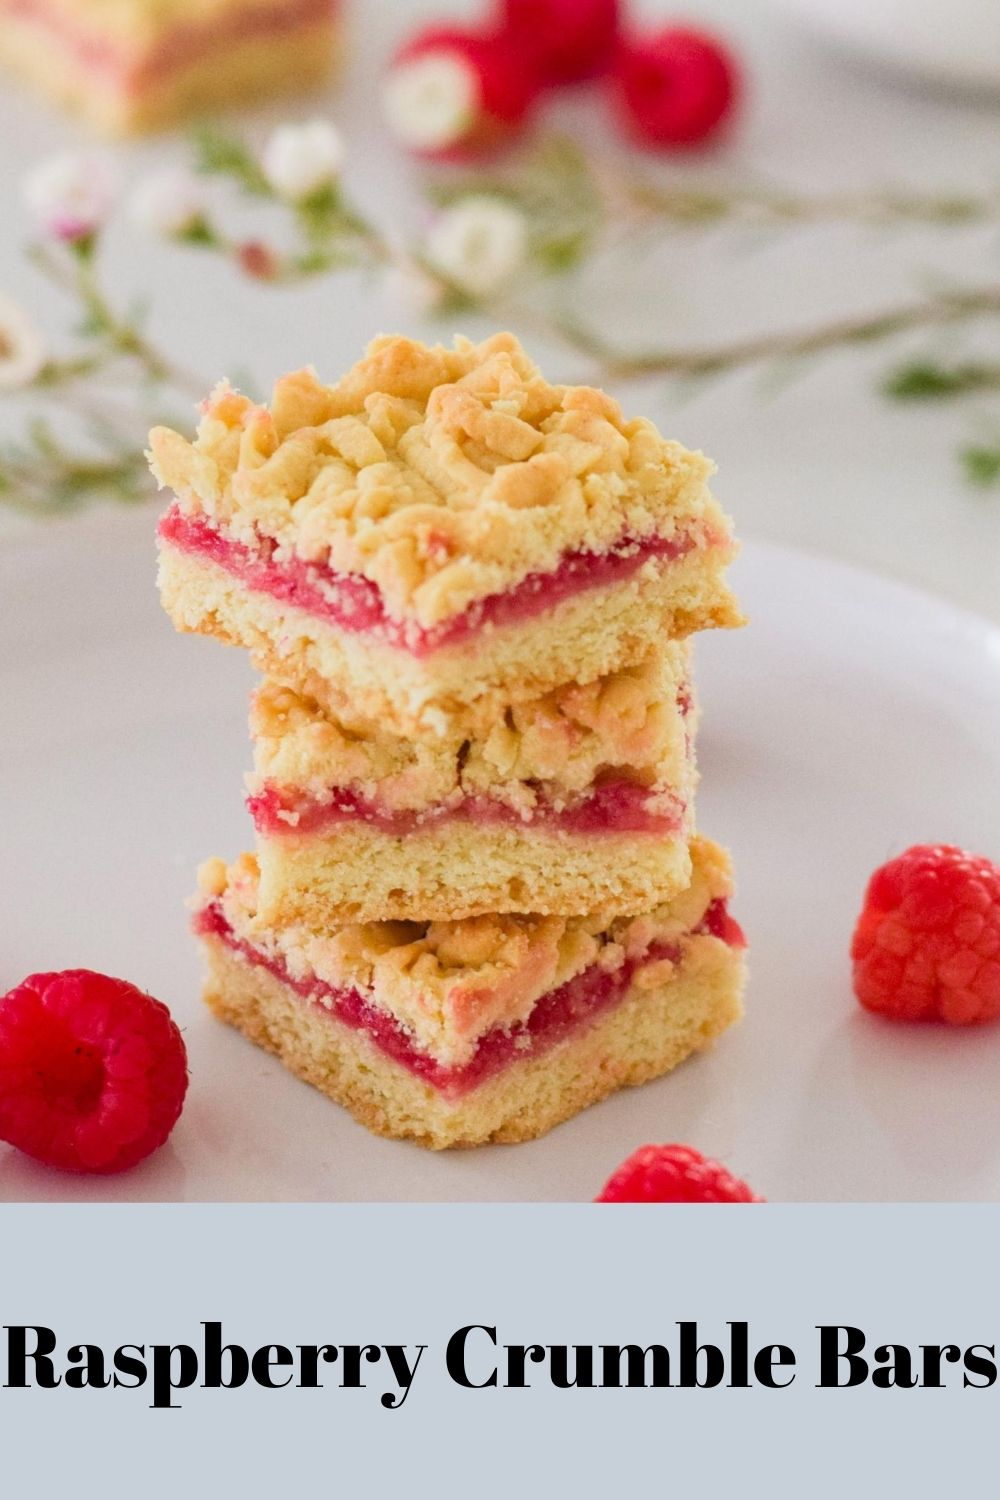 Raspberry Crumble Bars on a white plate